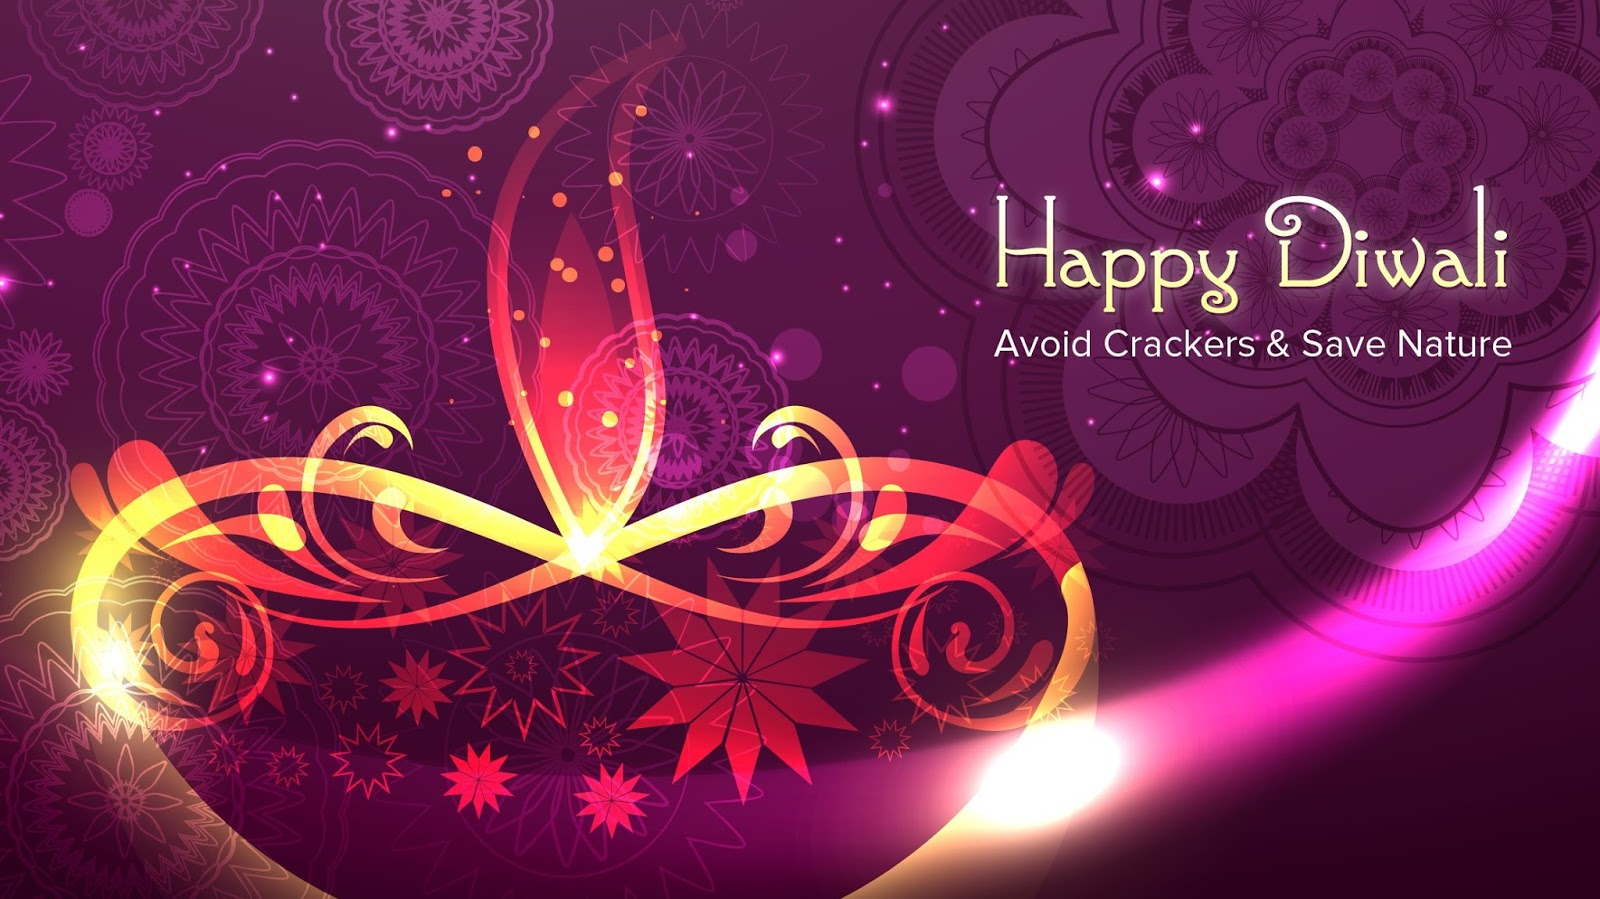 diwali wish from windowshive team